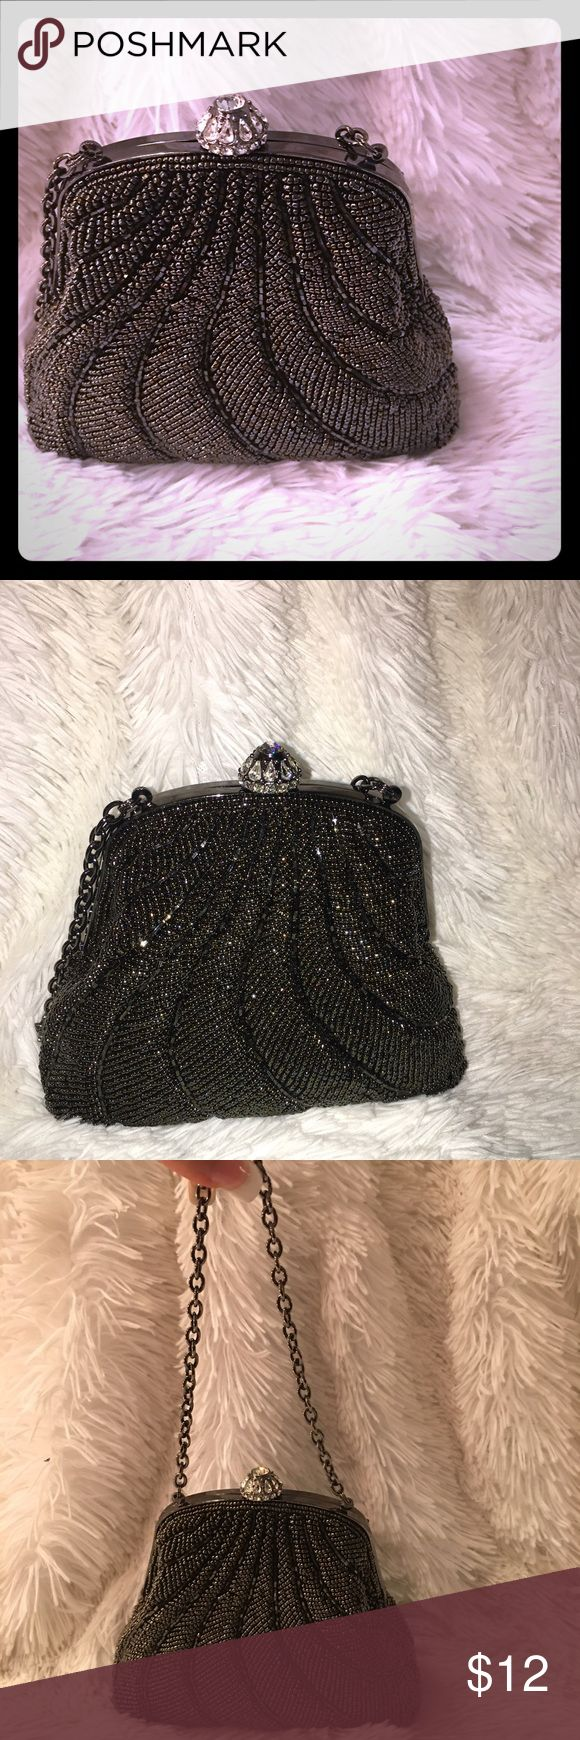 Gorgeous beaded handbag Petite beaded handbag perfect accessory with any dress for a night out, a wedding or a cocktail party!! Like new! Bags Mini Bags